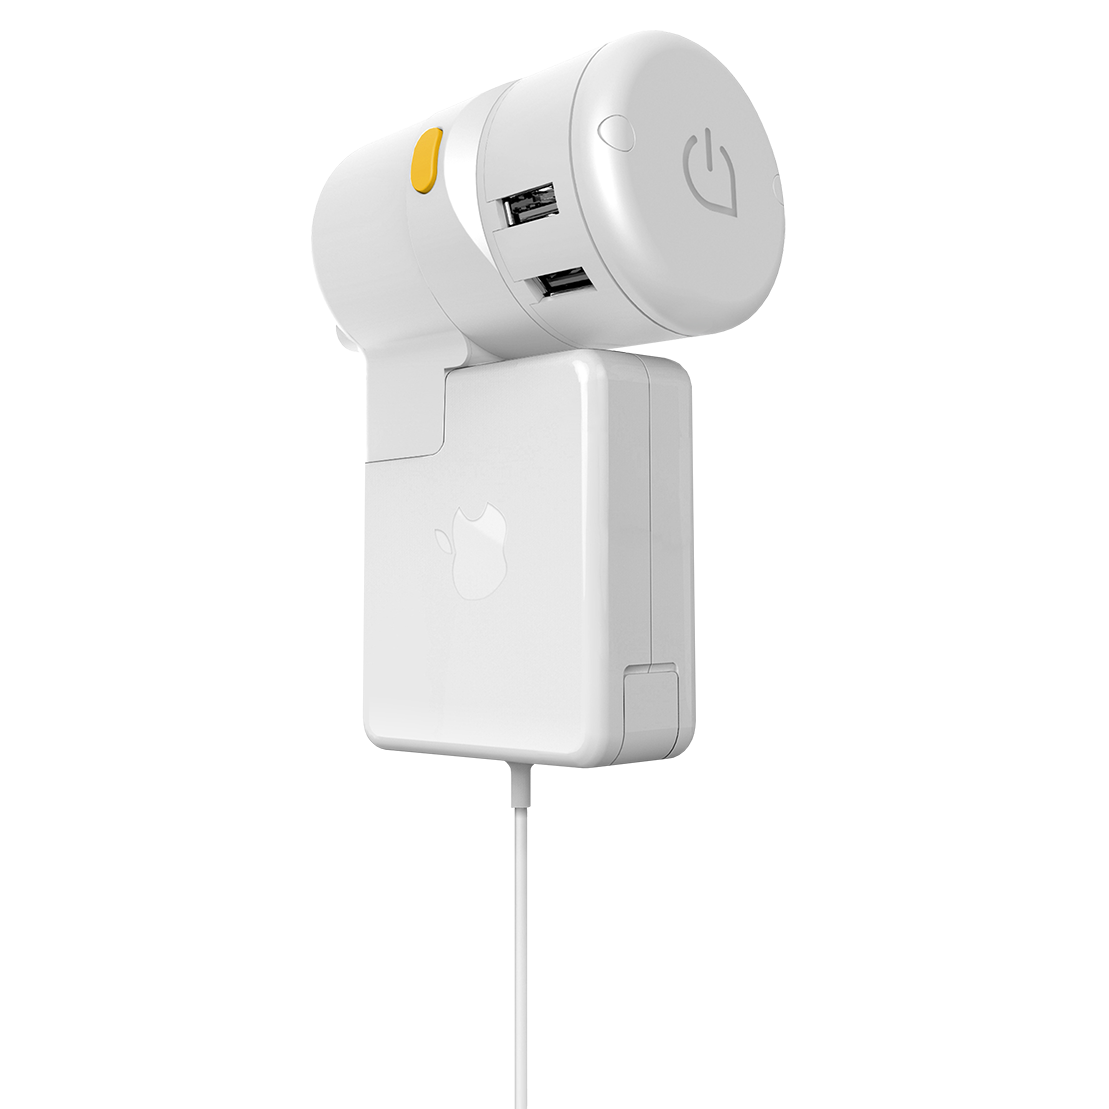 Twist World Charging Station Oneadaptr Wiring Harness Extension Socket Connector Ric Dryer Power Cord Adapter